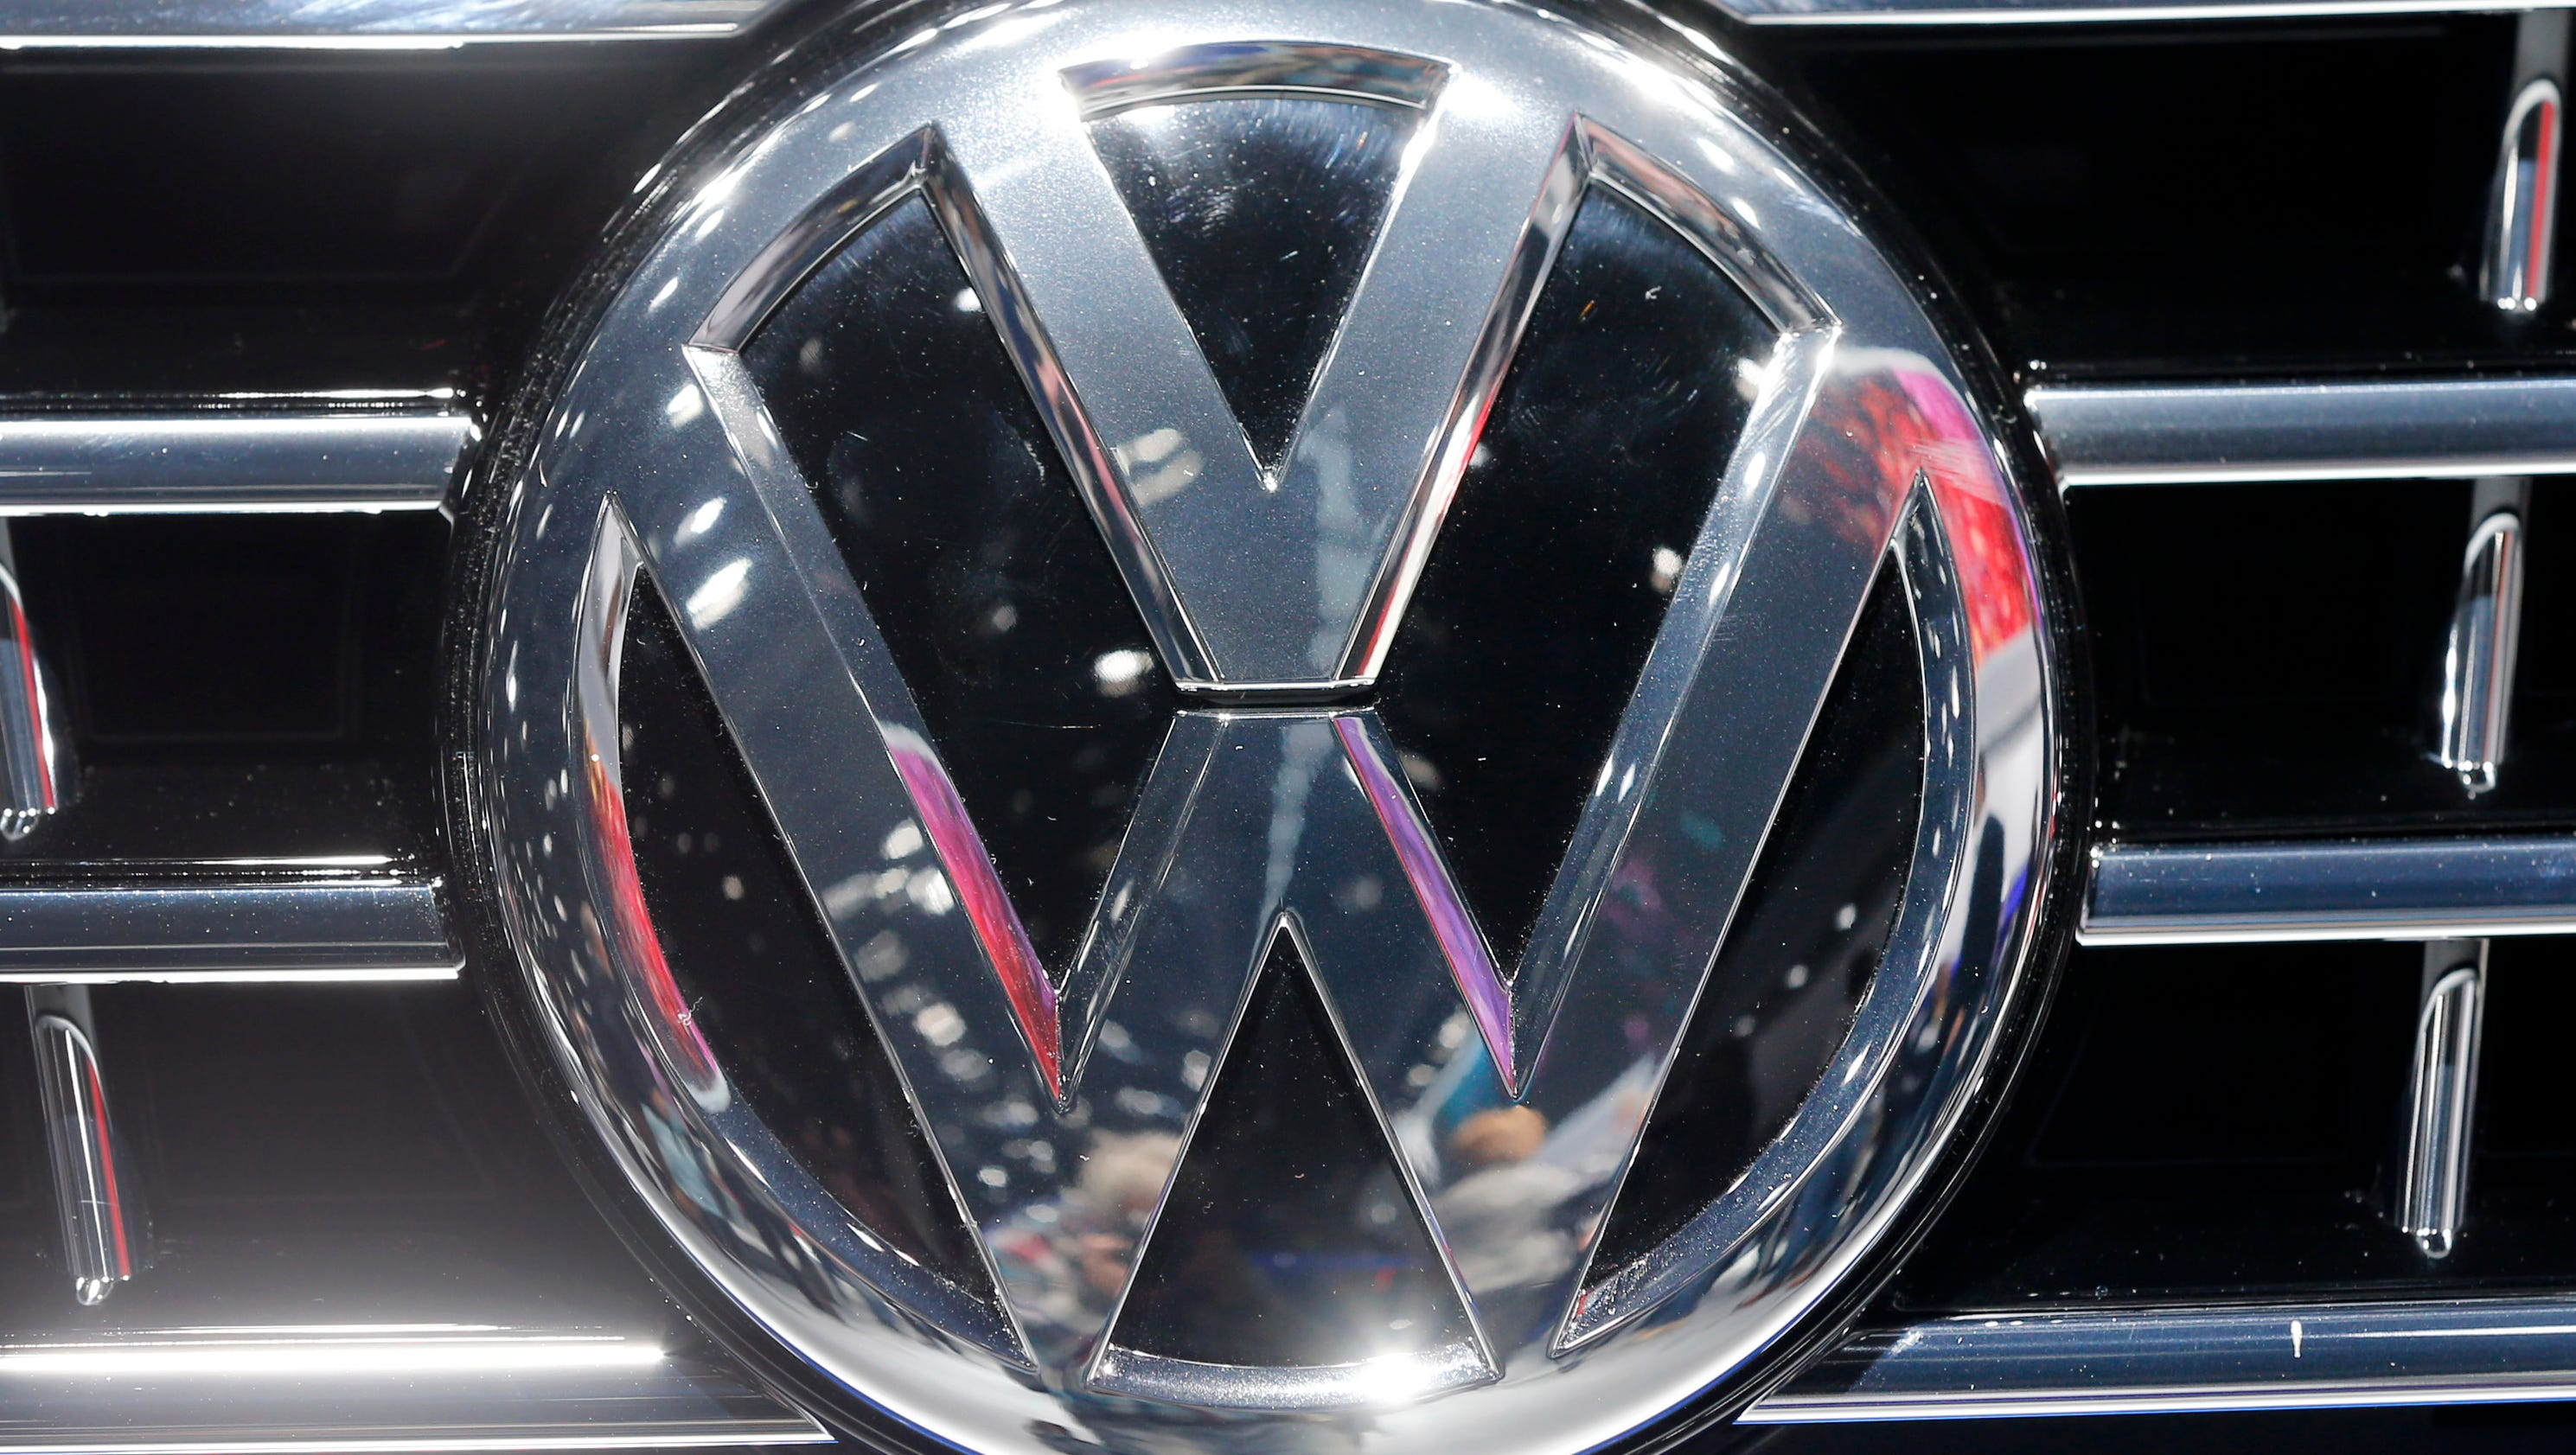 Volkswagen engineer pleads guilty, to cooperate in emissions scandal